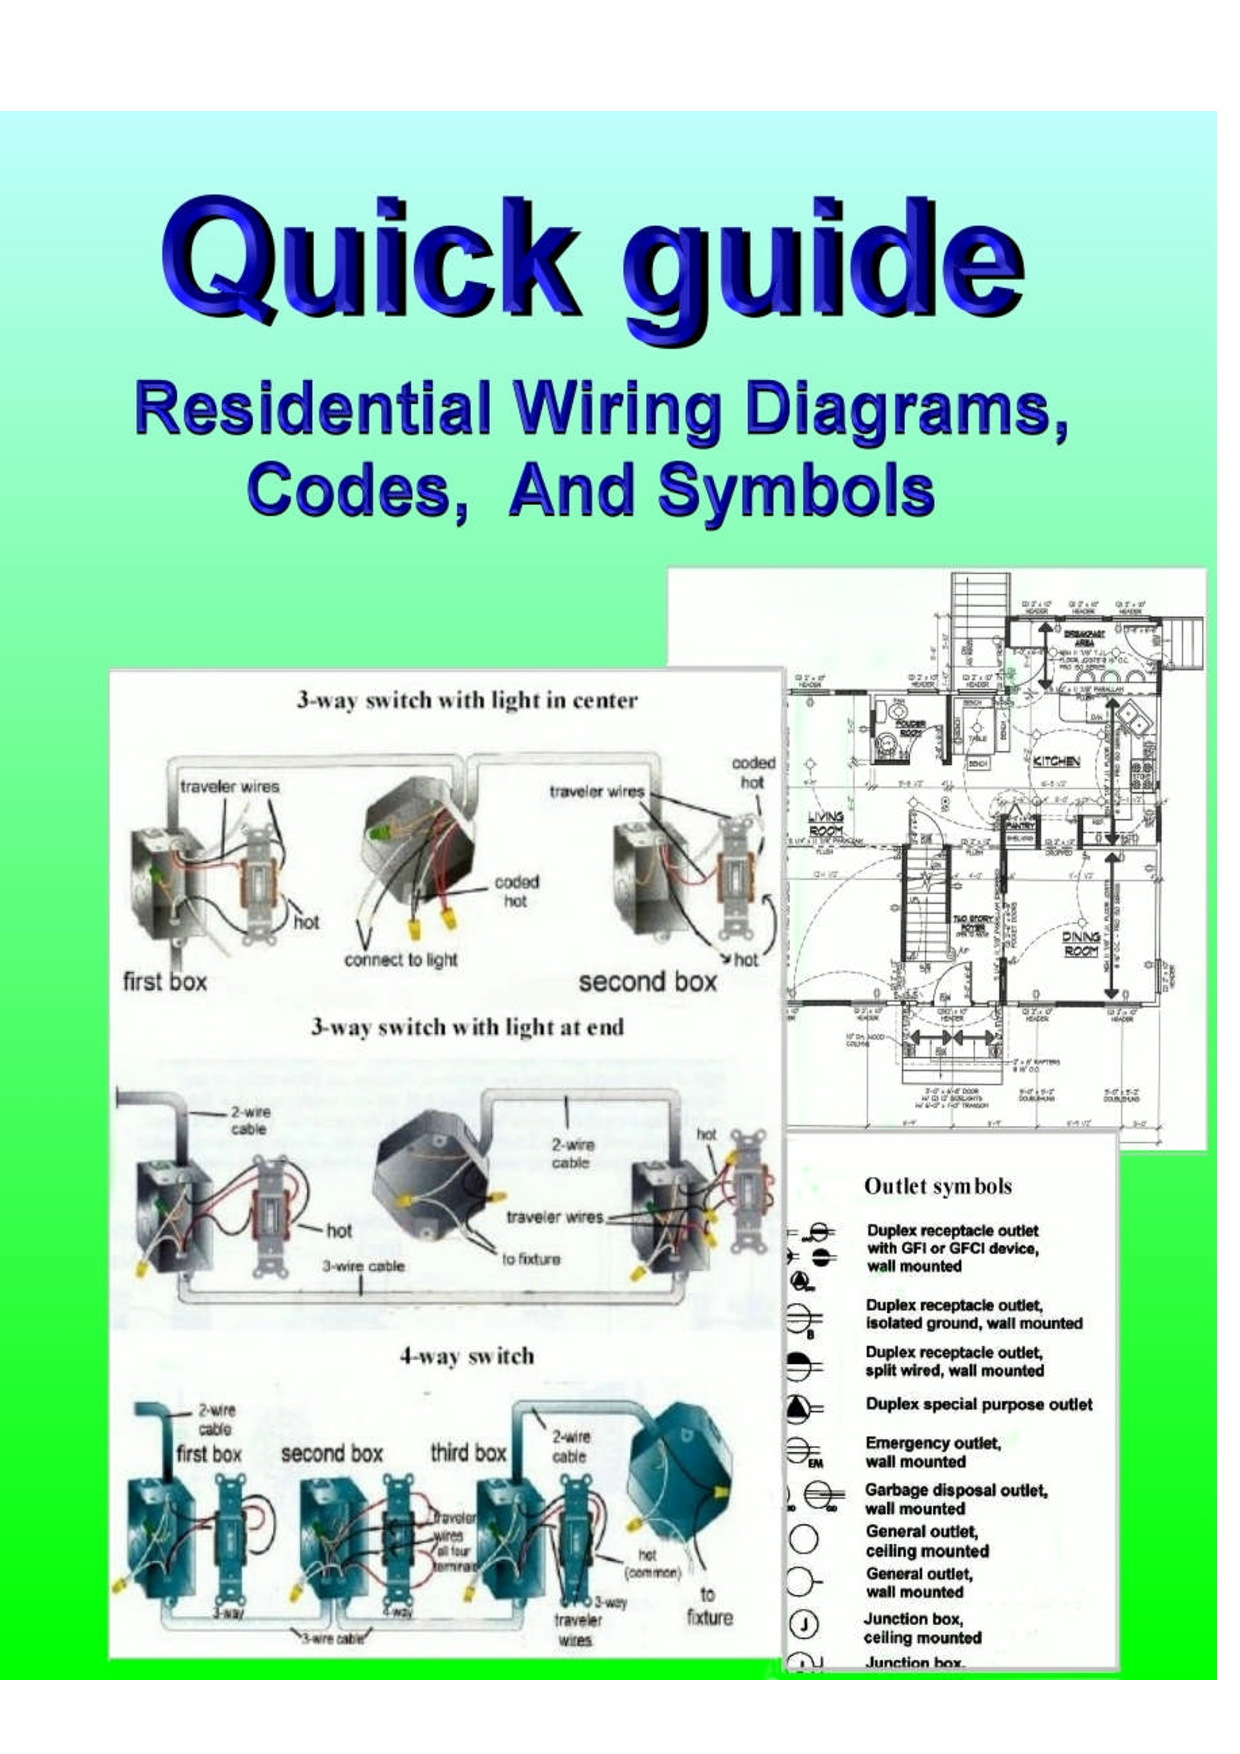 Home electrical wiring diagramspdf download legal documents 39 home electrical wiring diagramspdf download legal documents 39 pages with many diagrams and illustrations a step by step home wiring guide with diagrams publicscrutiny Image collections